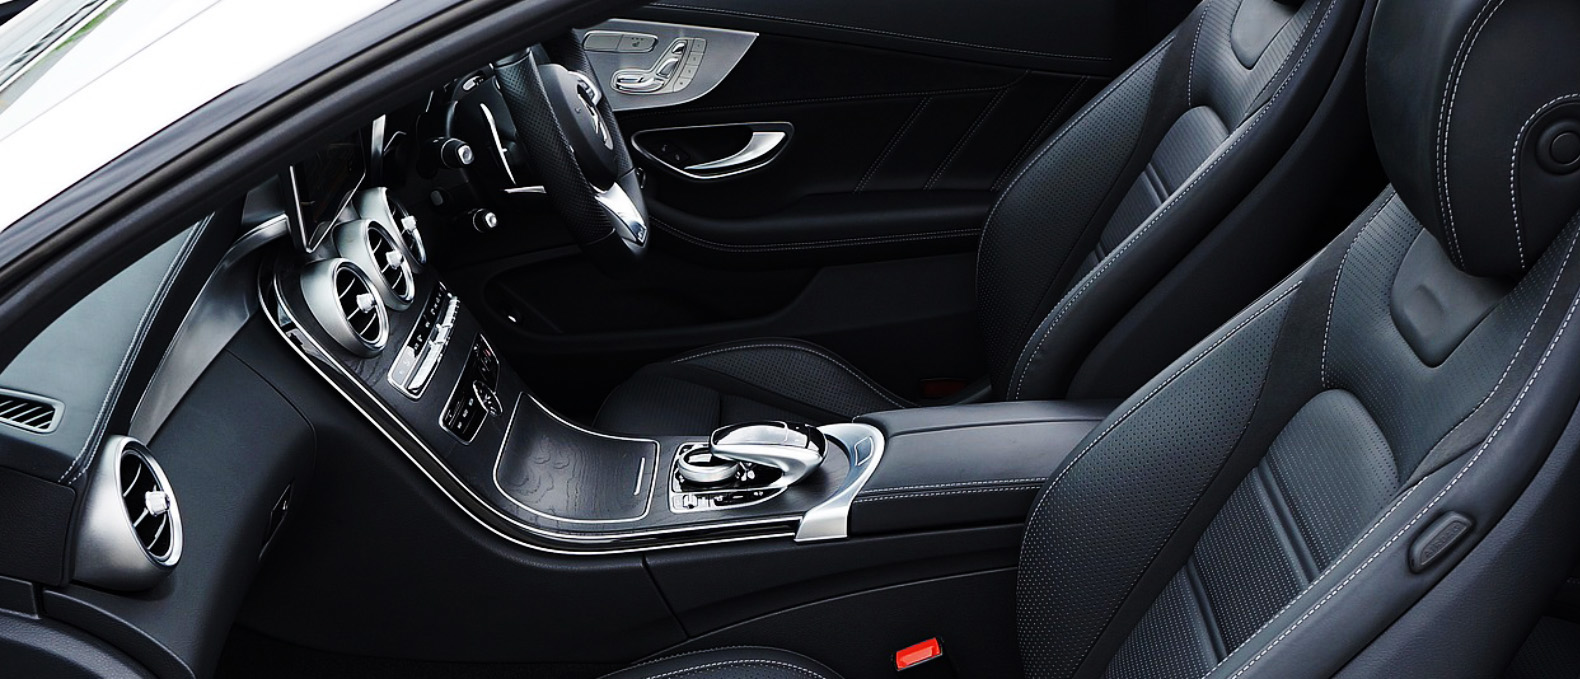 Automotive interiors & exteriors